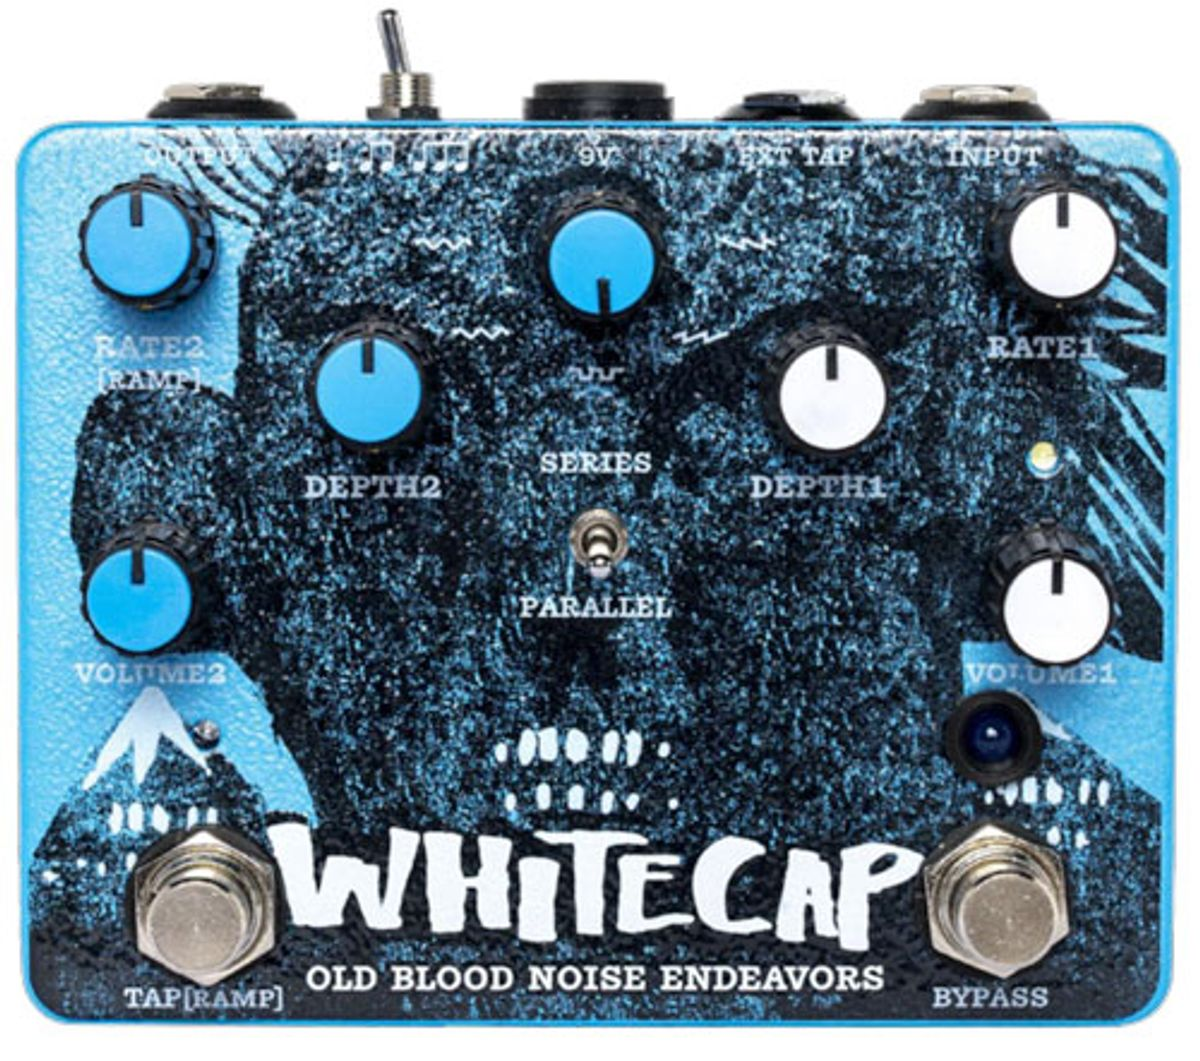 Old Blood Noise Endeavors Introduces the Whitecap